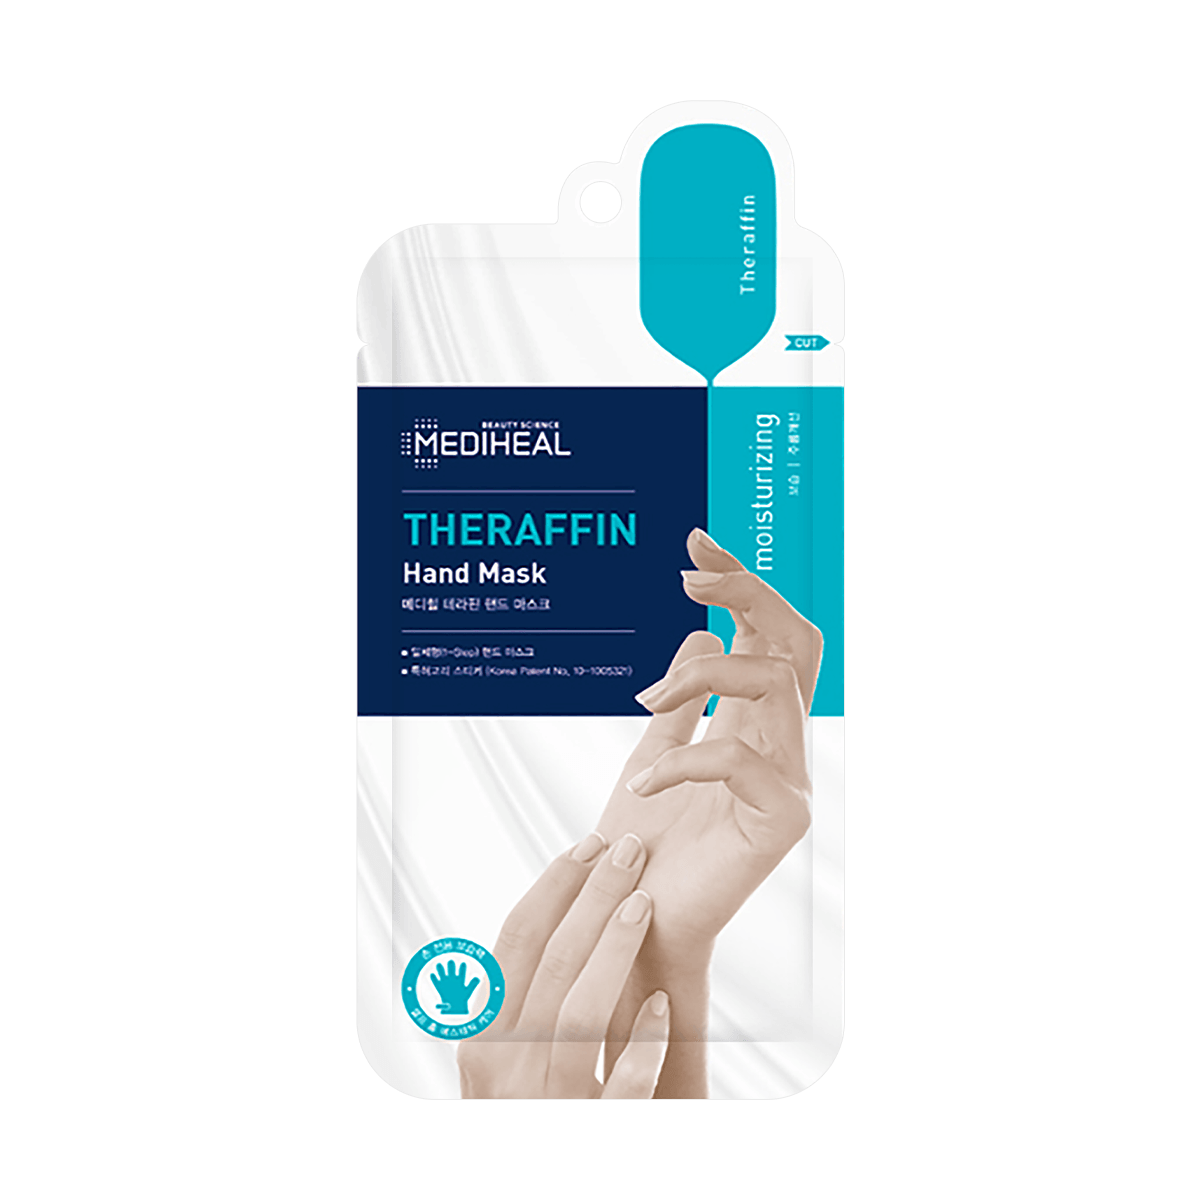 Yamibuy.com:Customer reviews:Theraffin Hand Mask 1pair